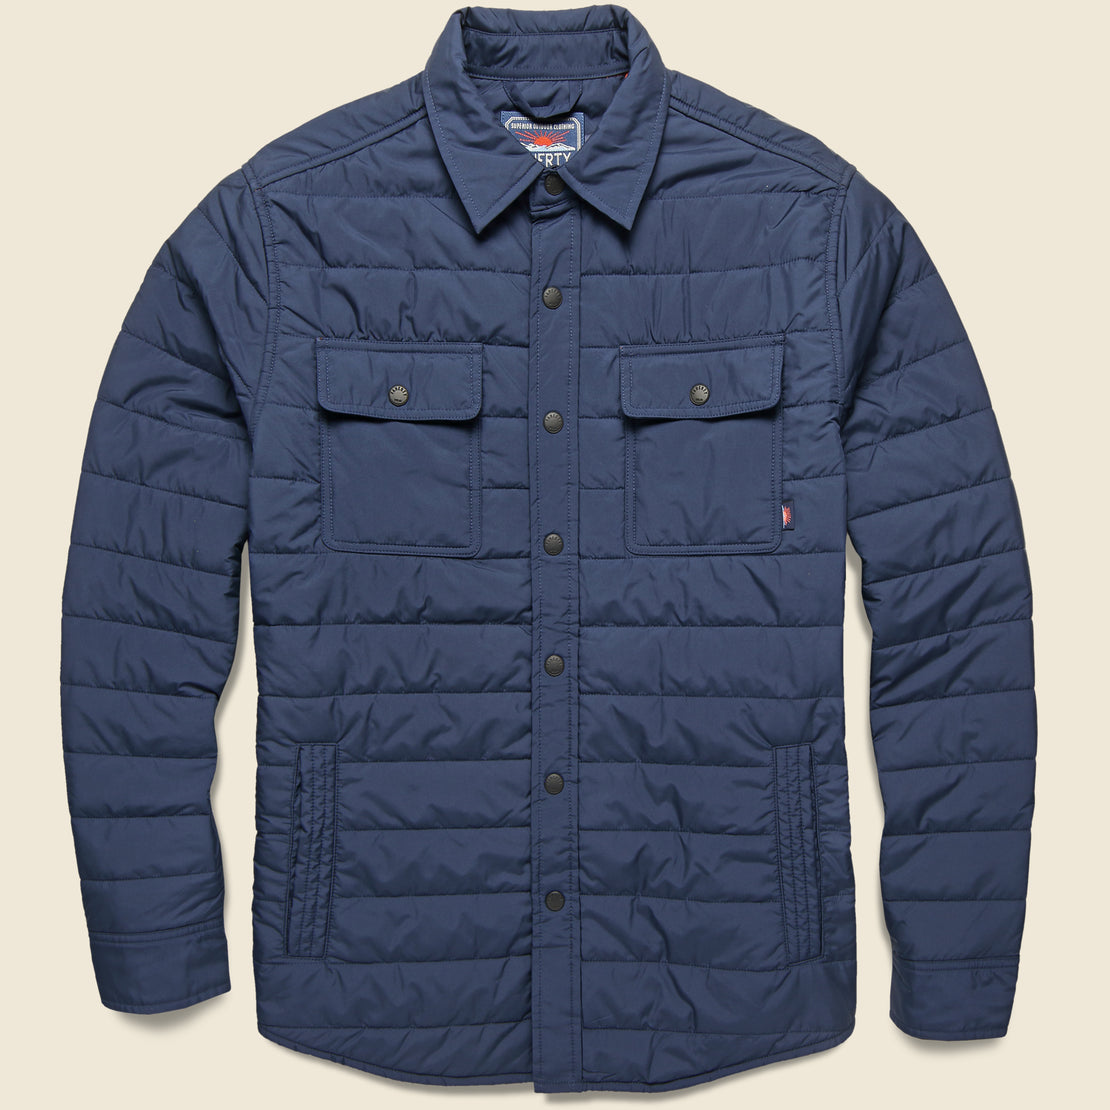 Faherty Atmosphere Packable Jacket - Navy